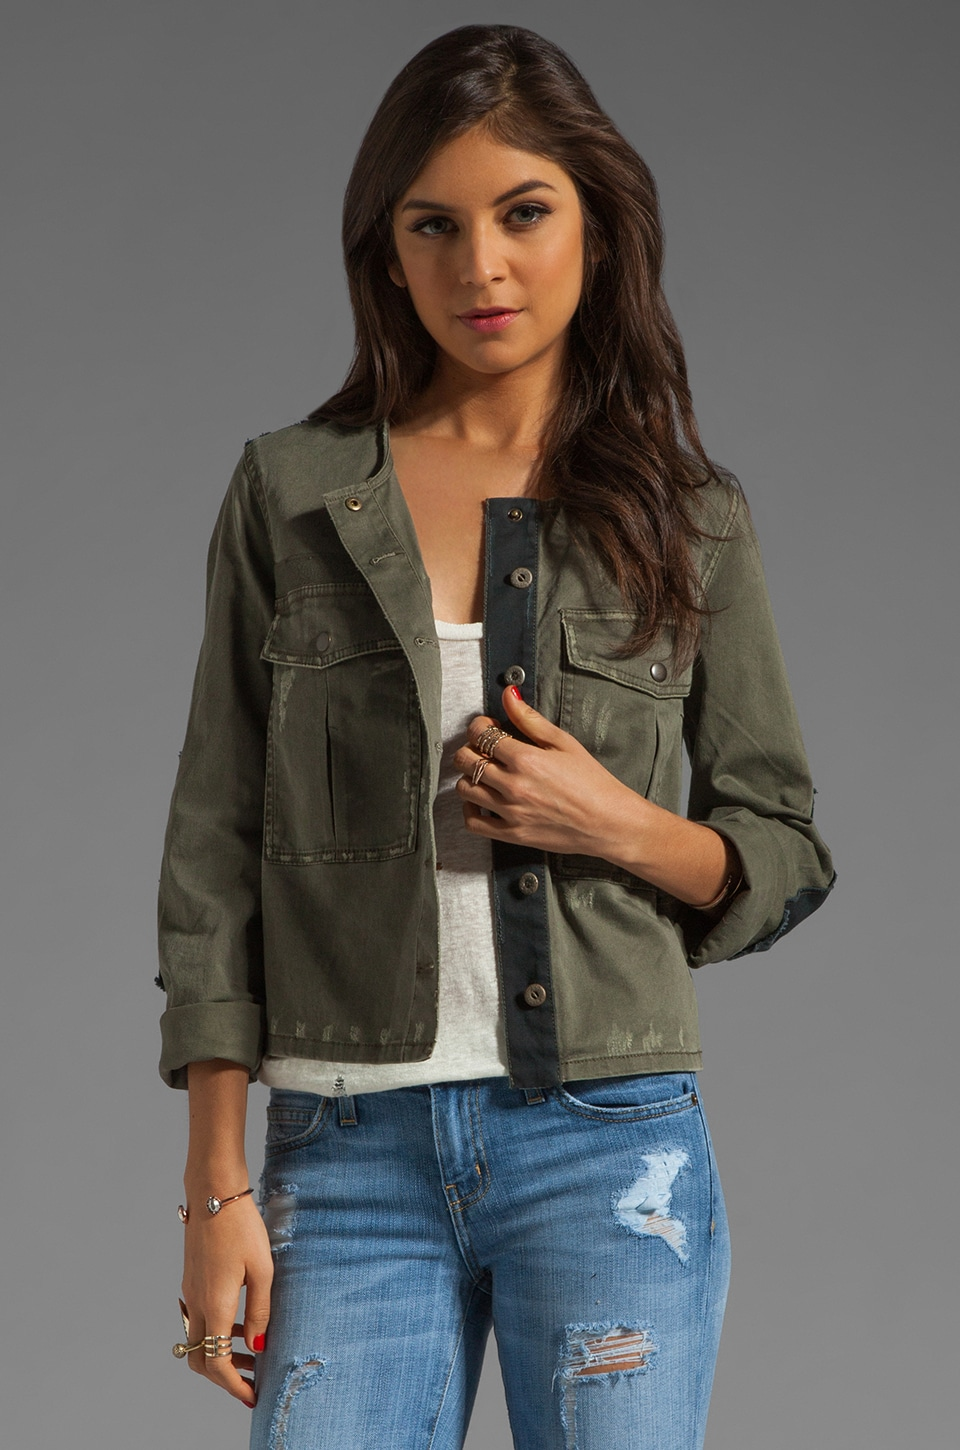 Free People Military Jacket in Military Green